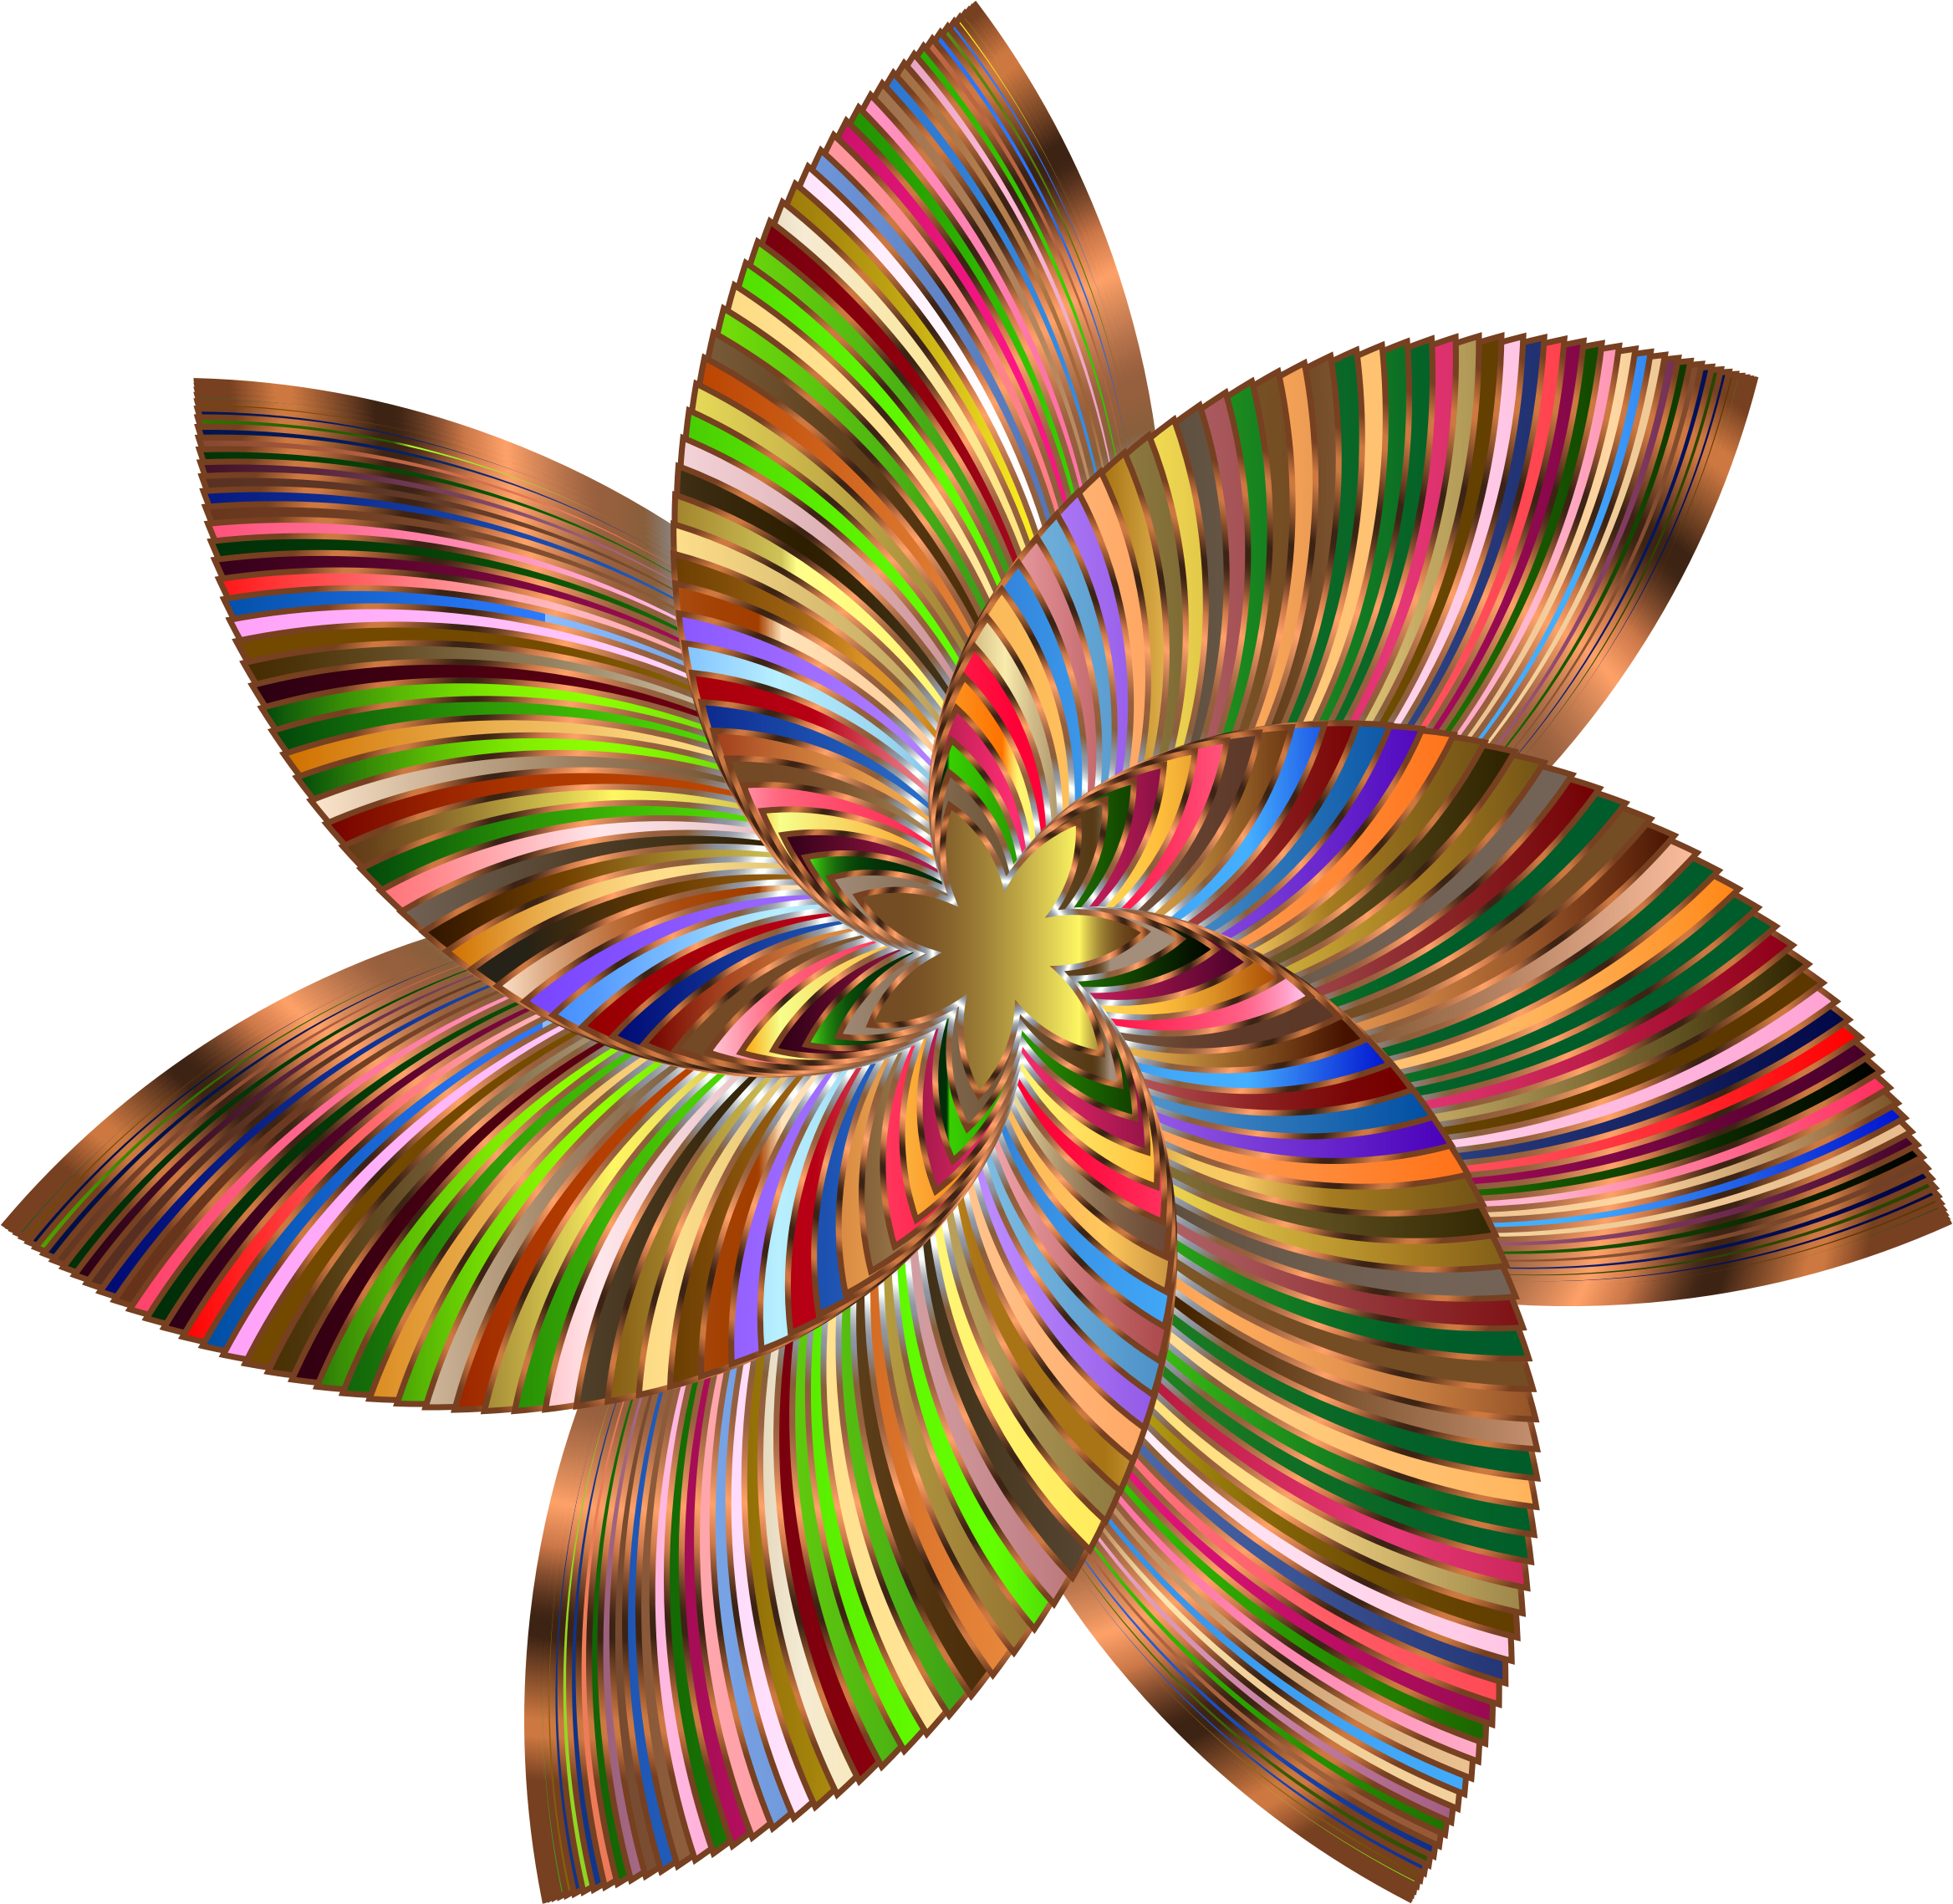 Colorful Flower Line Art 4 by GDJ